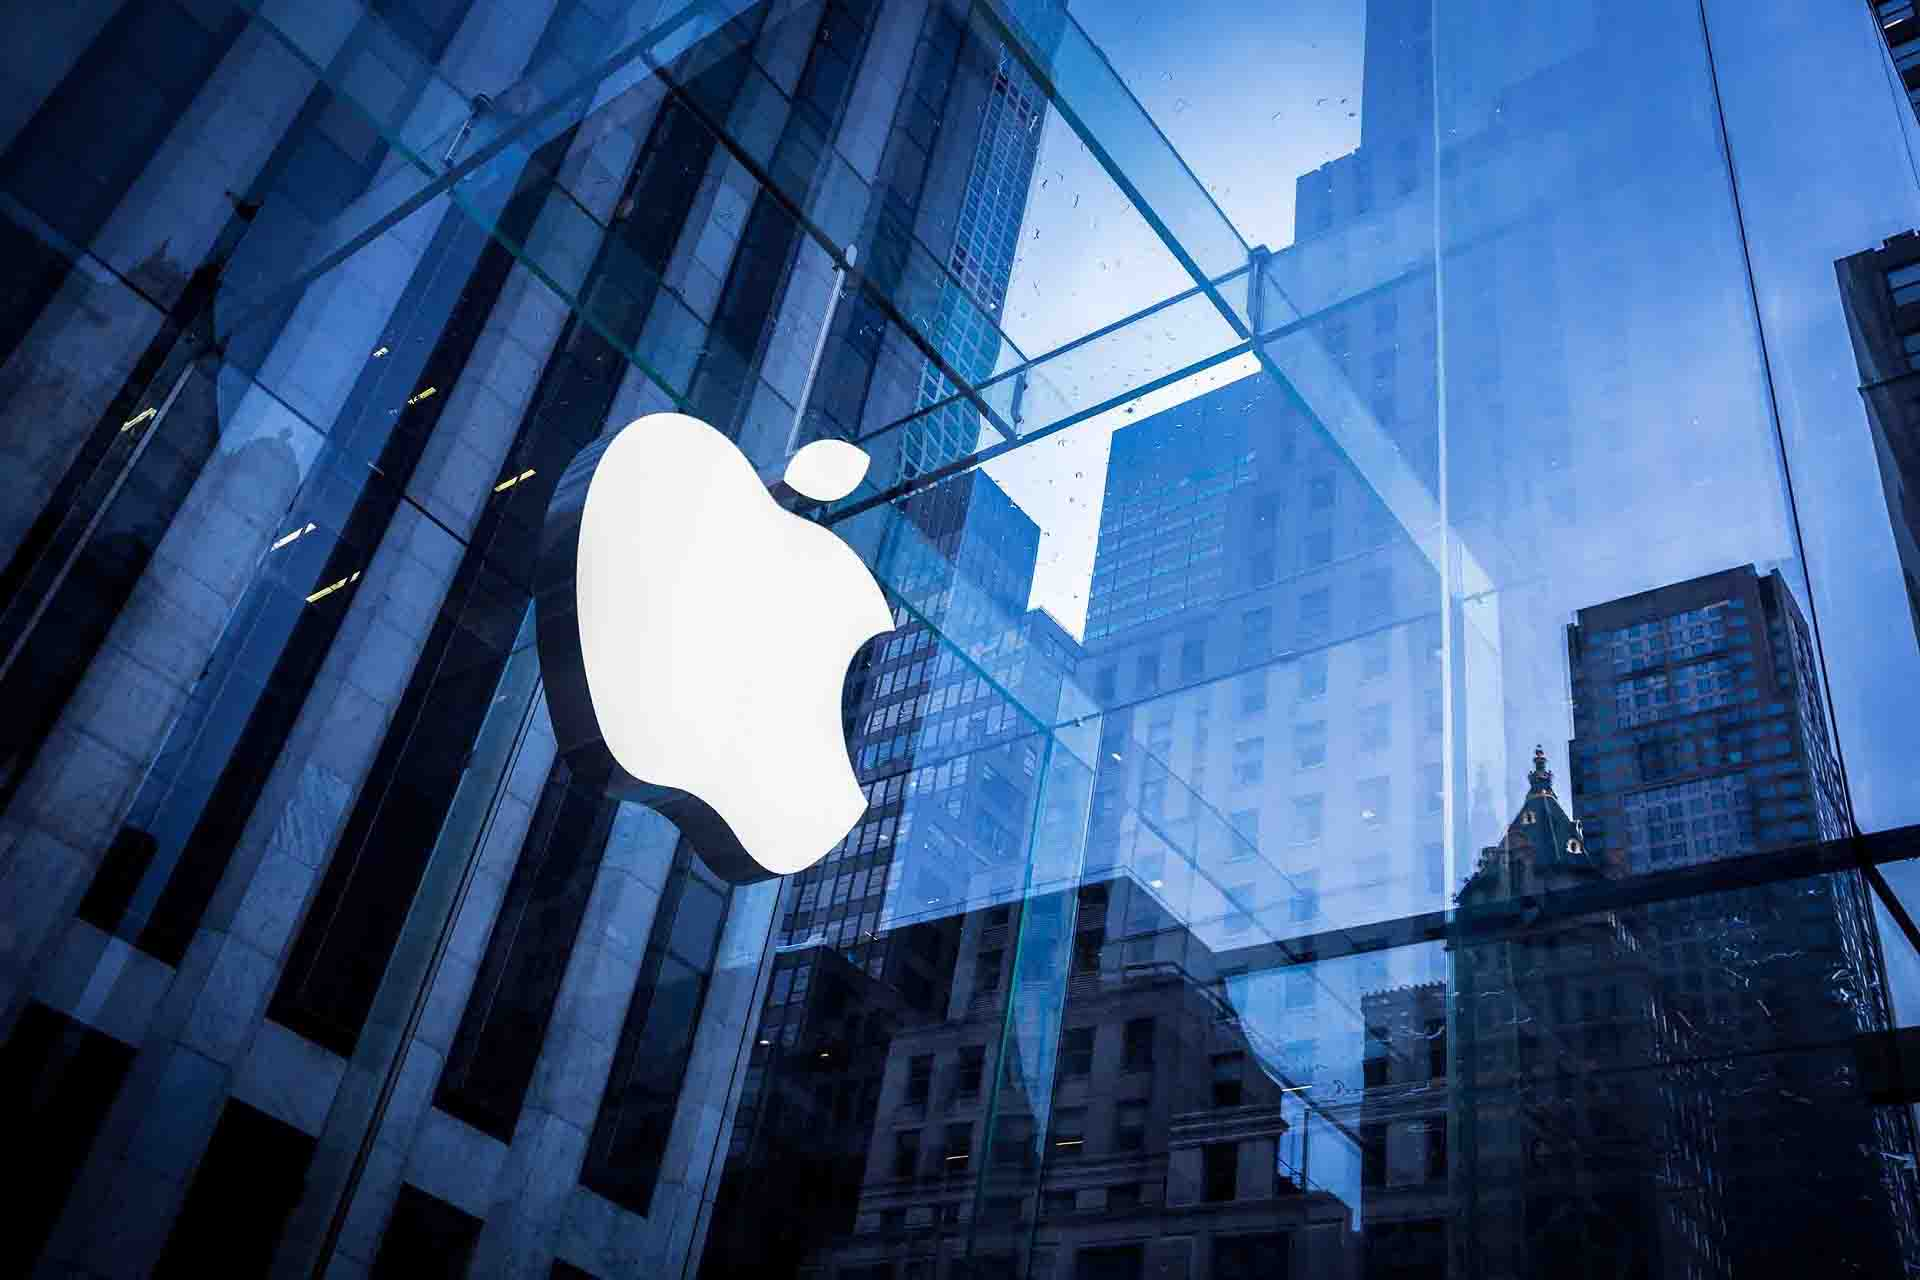 Apple's sixth consecutive year ranked first in the ranking of most valuable brands in the world